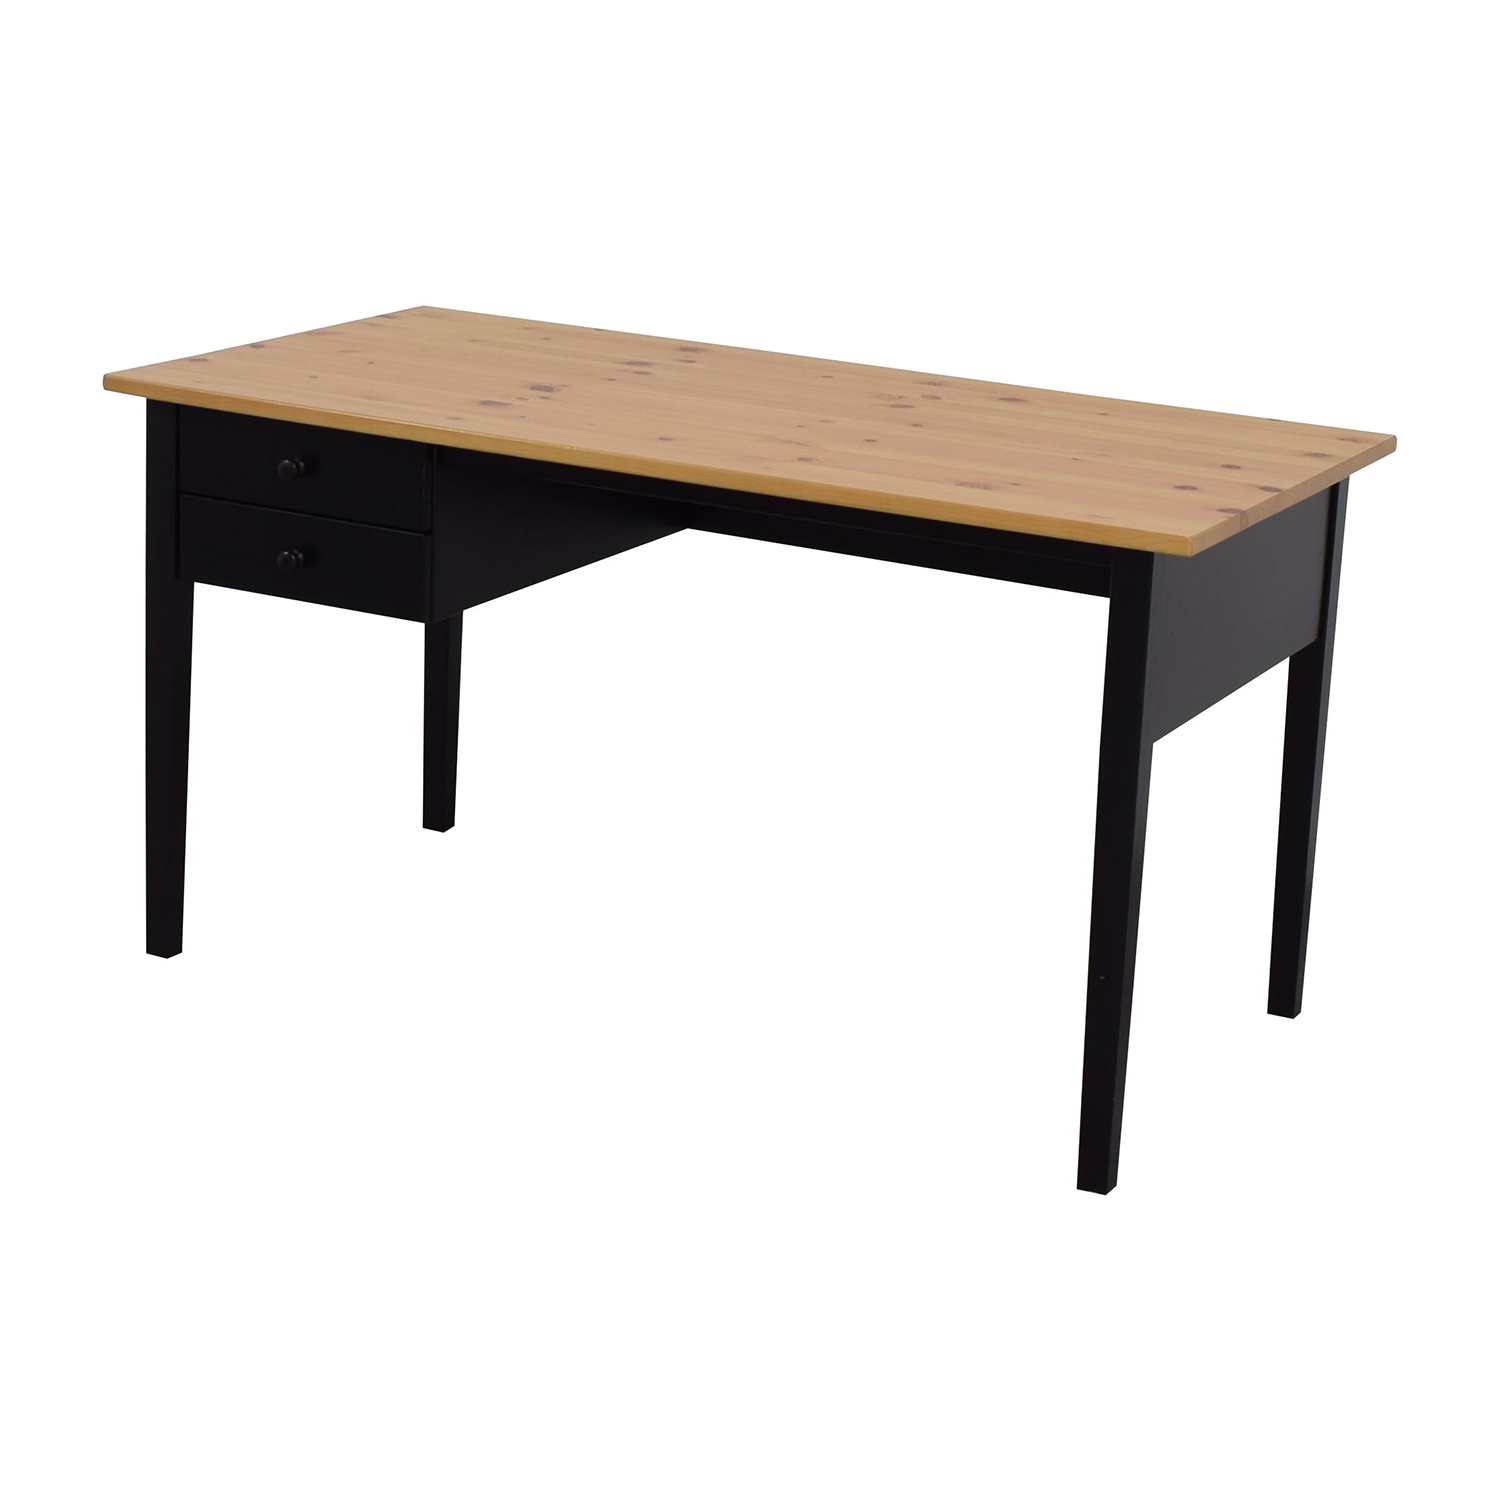 62 off ikea ikea arkelstorp desk tables. Black Bedroom Furniture Sets. Home Design Ideas